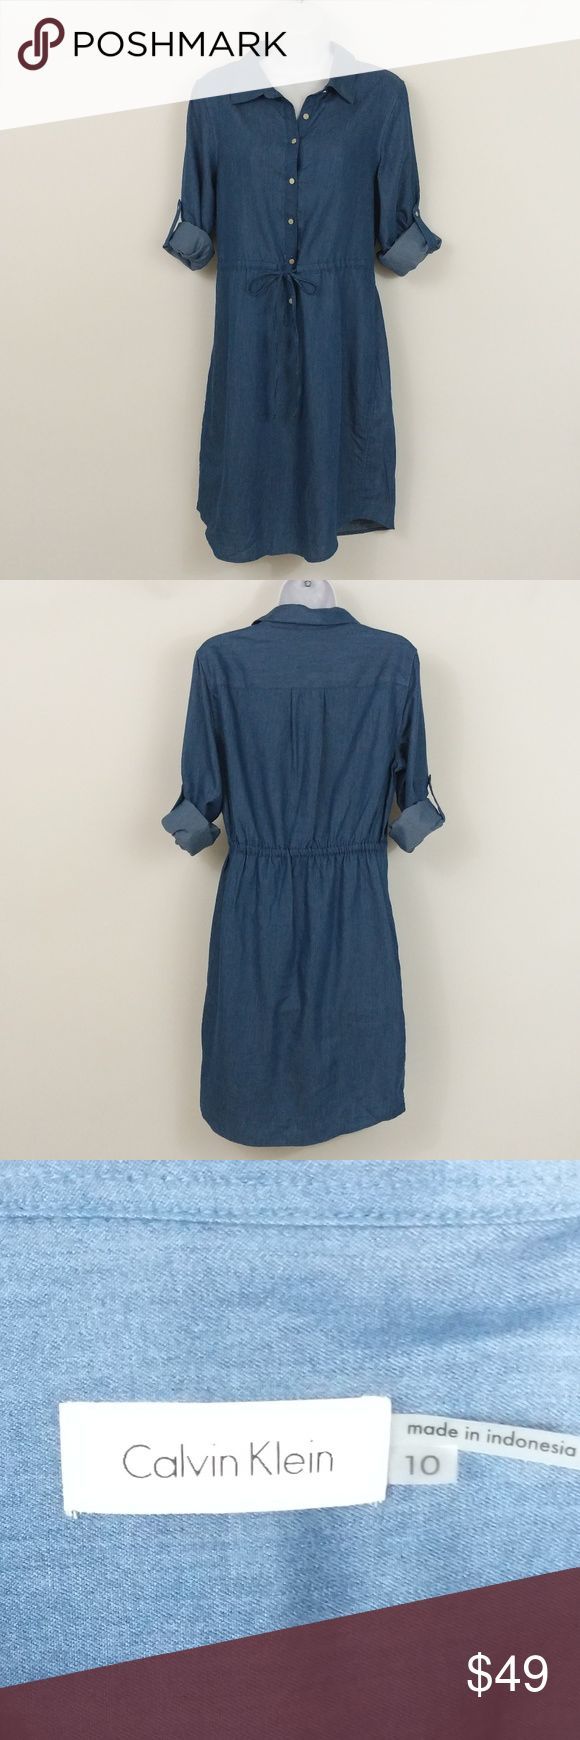 Calvin Klein Chambray Shirt Dress Roll-tab sleeves can be worn long or short.  Size information: Women's Size 10 (US). Dress about knee length.  Condition Notes: New Without Tags (deadstock returns)  We will consider all reasonable offers. Thanks for shopping with us! Calvin Klein Dresses Midi